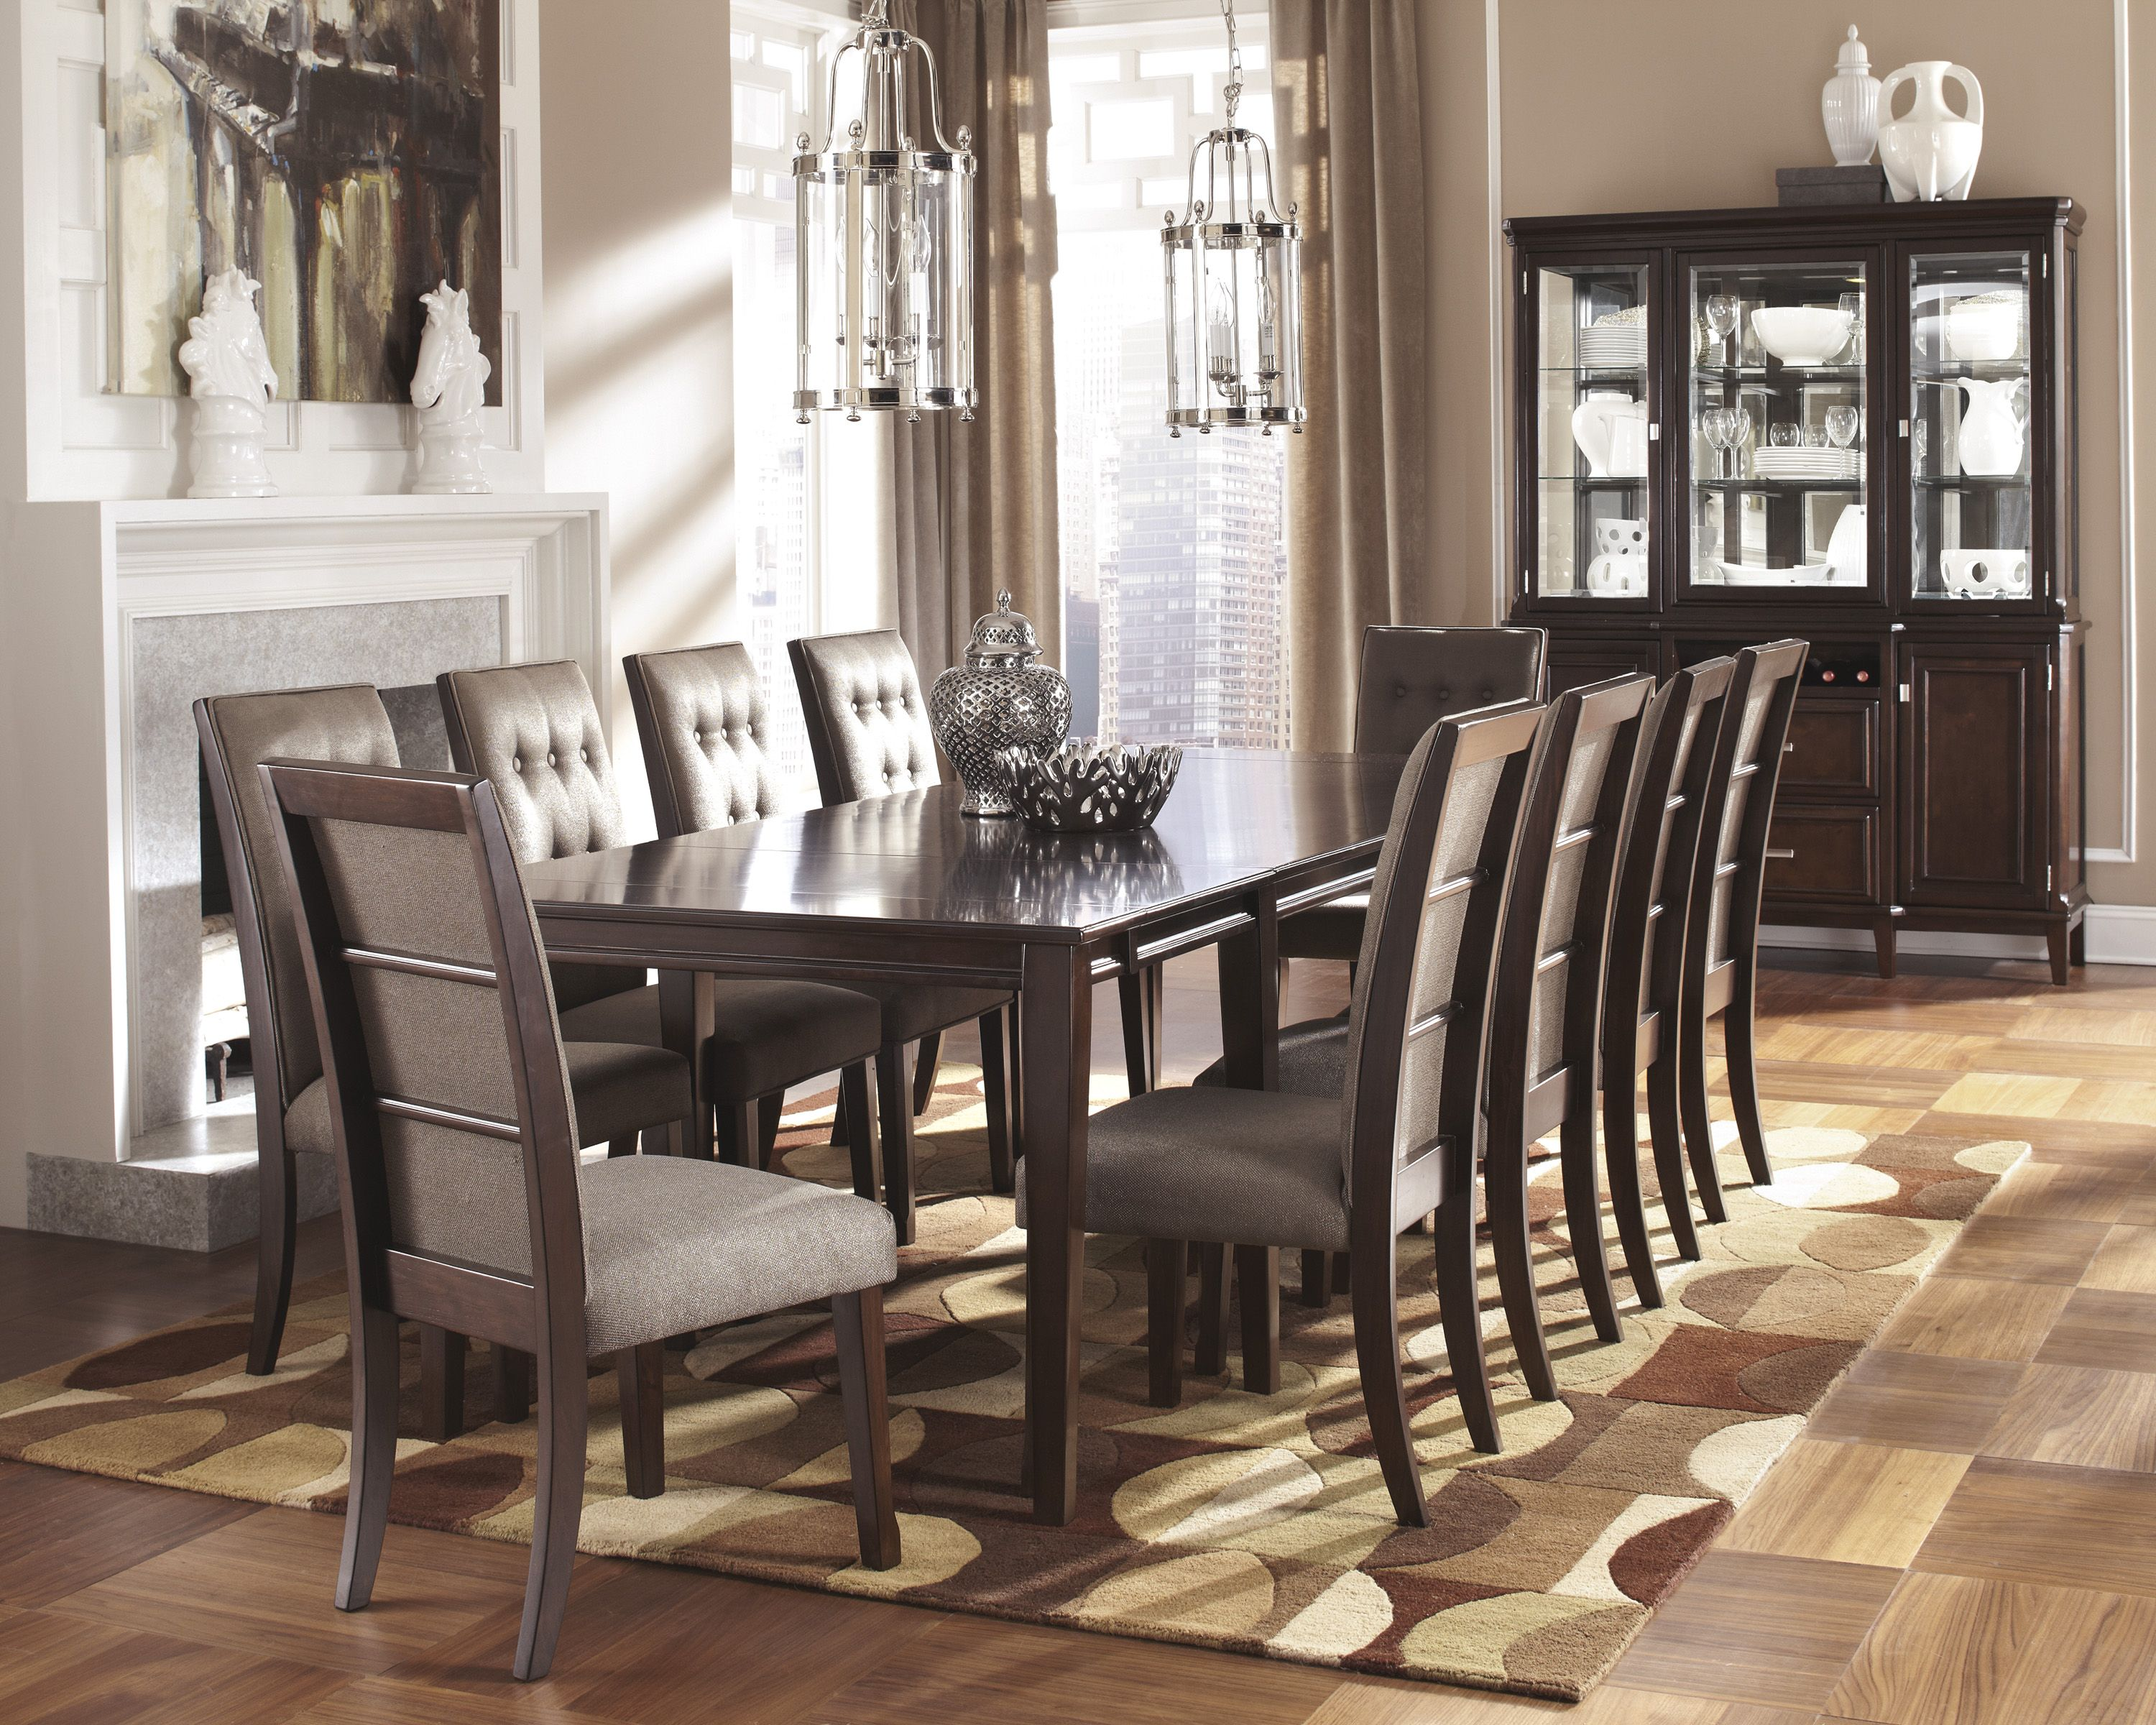 Unique Dining Room From #midas  #pin #repin #diningroom #table Awesome Dining Room Furniture Ireland Inspiration